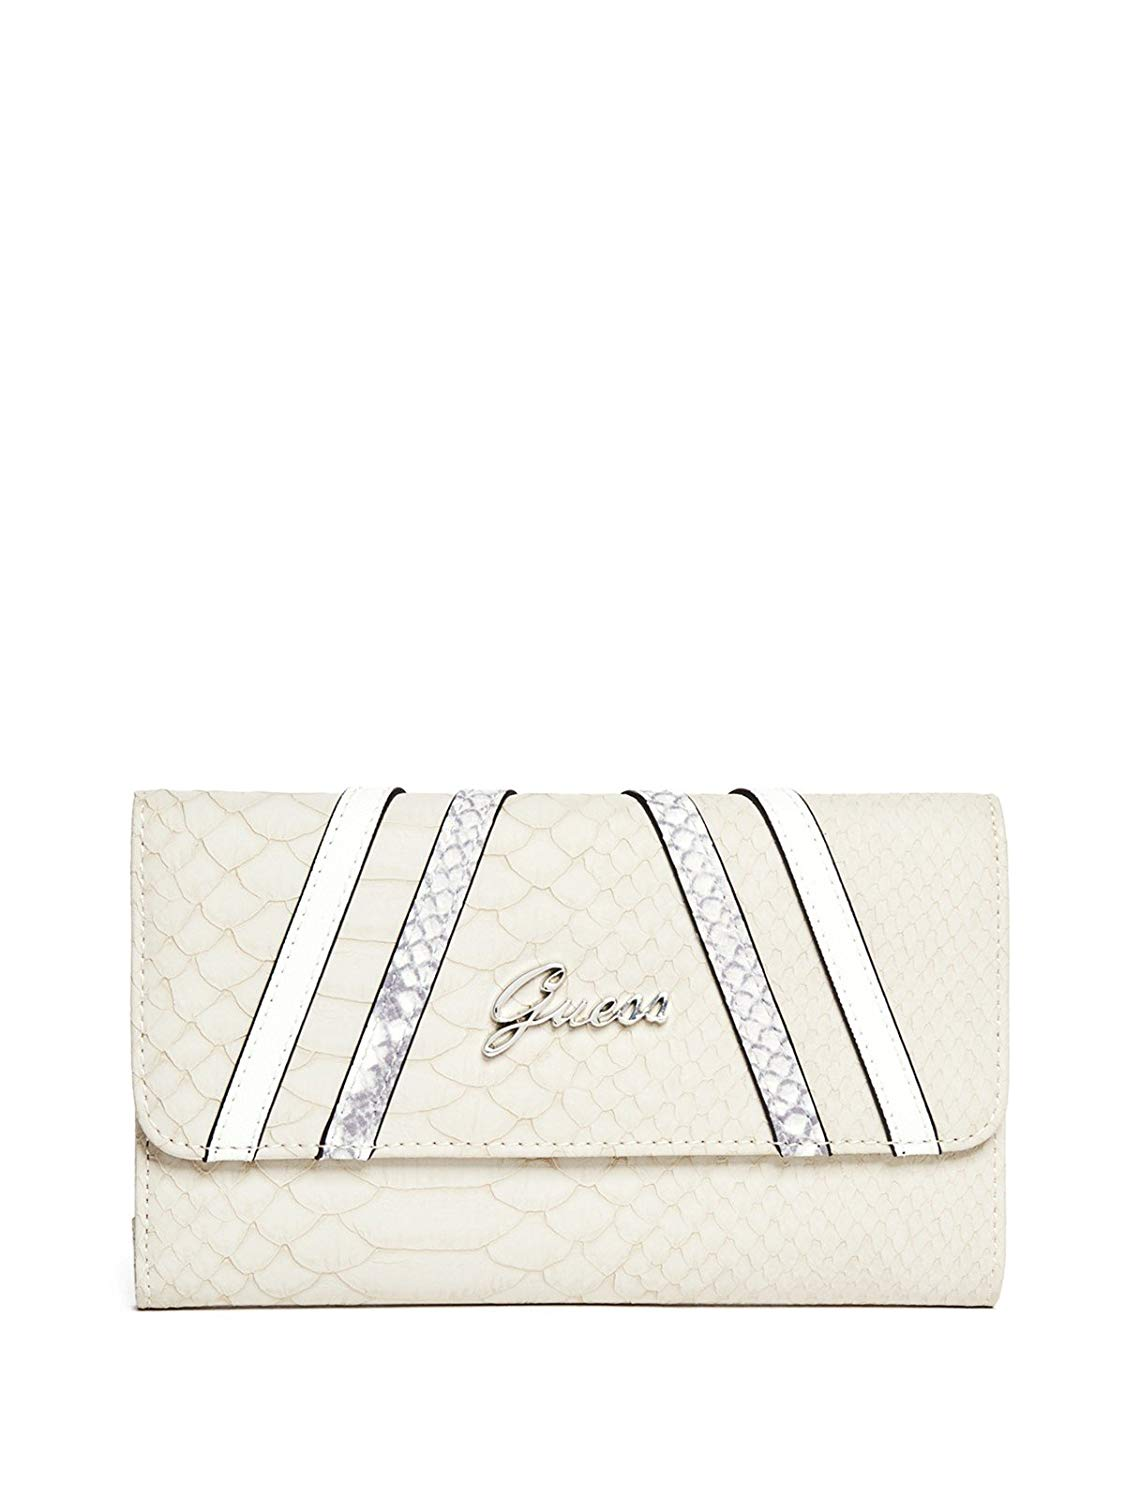 f327c0f8f7 Get Quotations · GUESS Womens Alton Flap Clutch